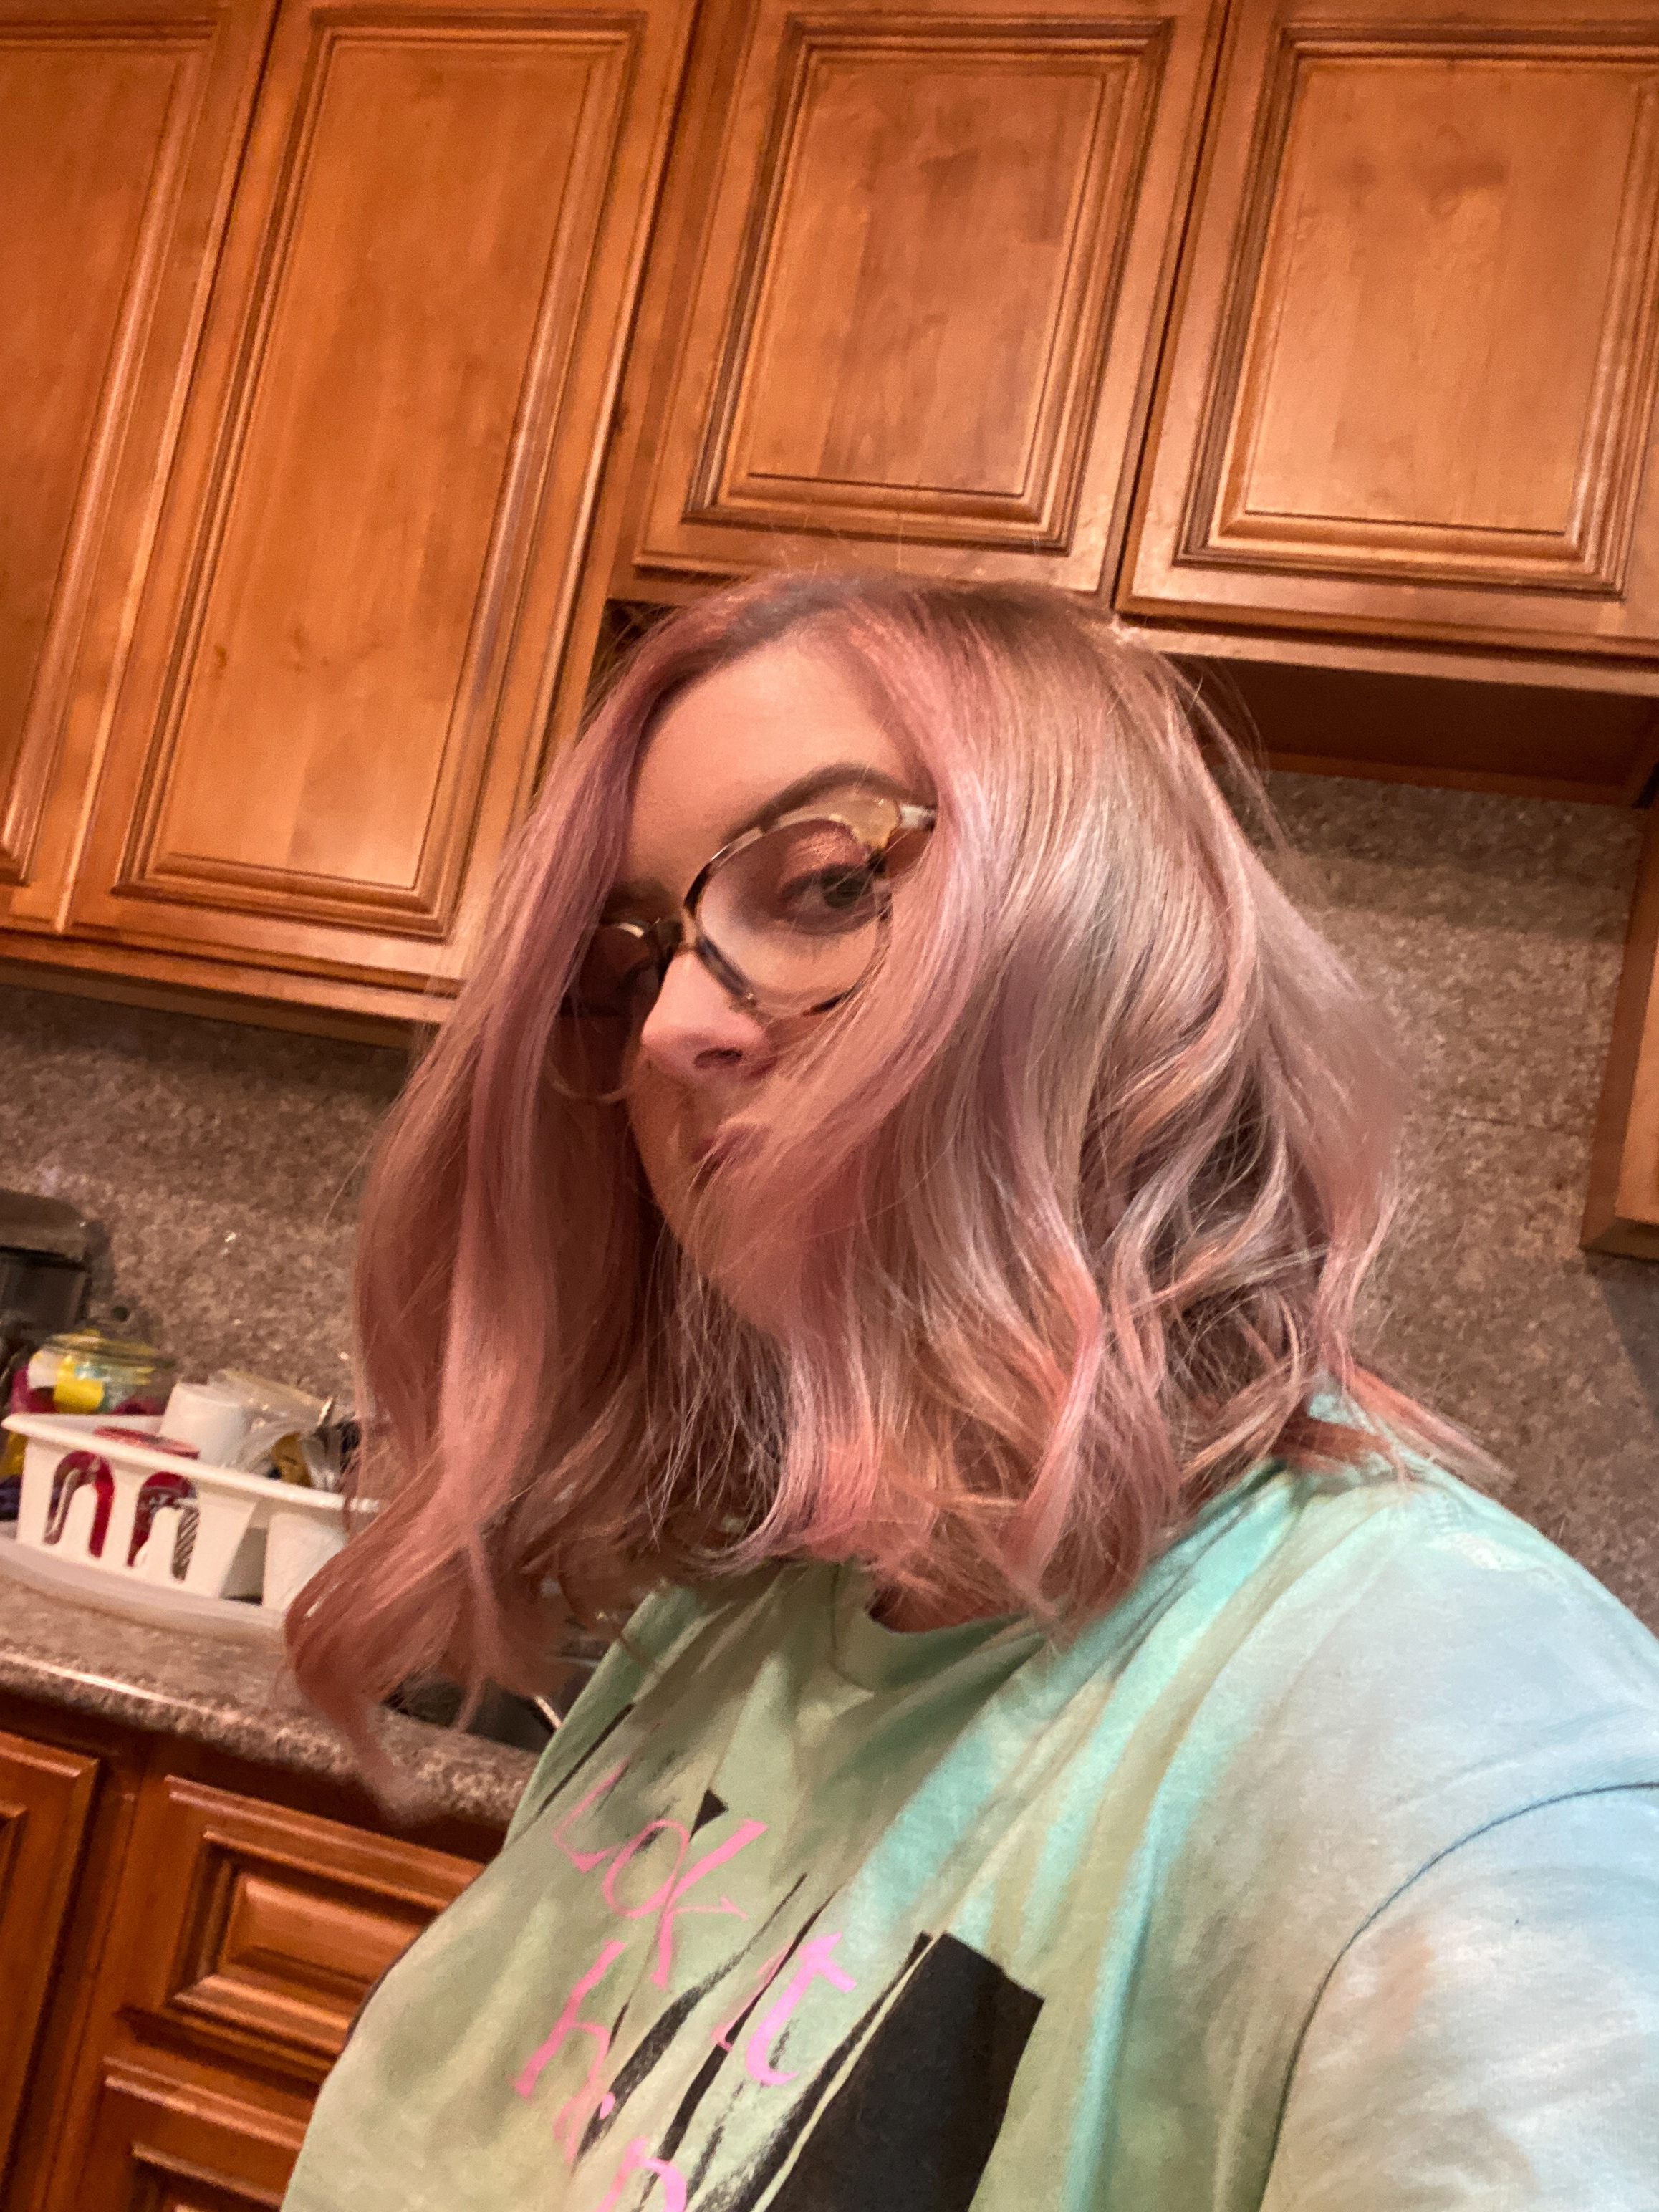 Get rose gold hair at home! Find out how to get perfect DIY rose gold hair with tips and tricks from Kelsey of Blondes & Bagels.